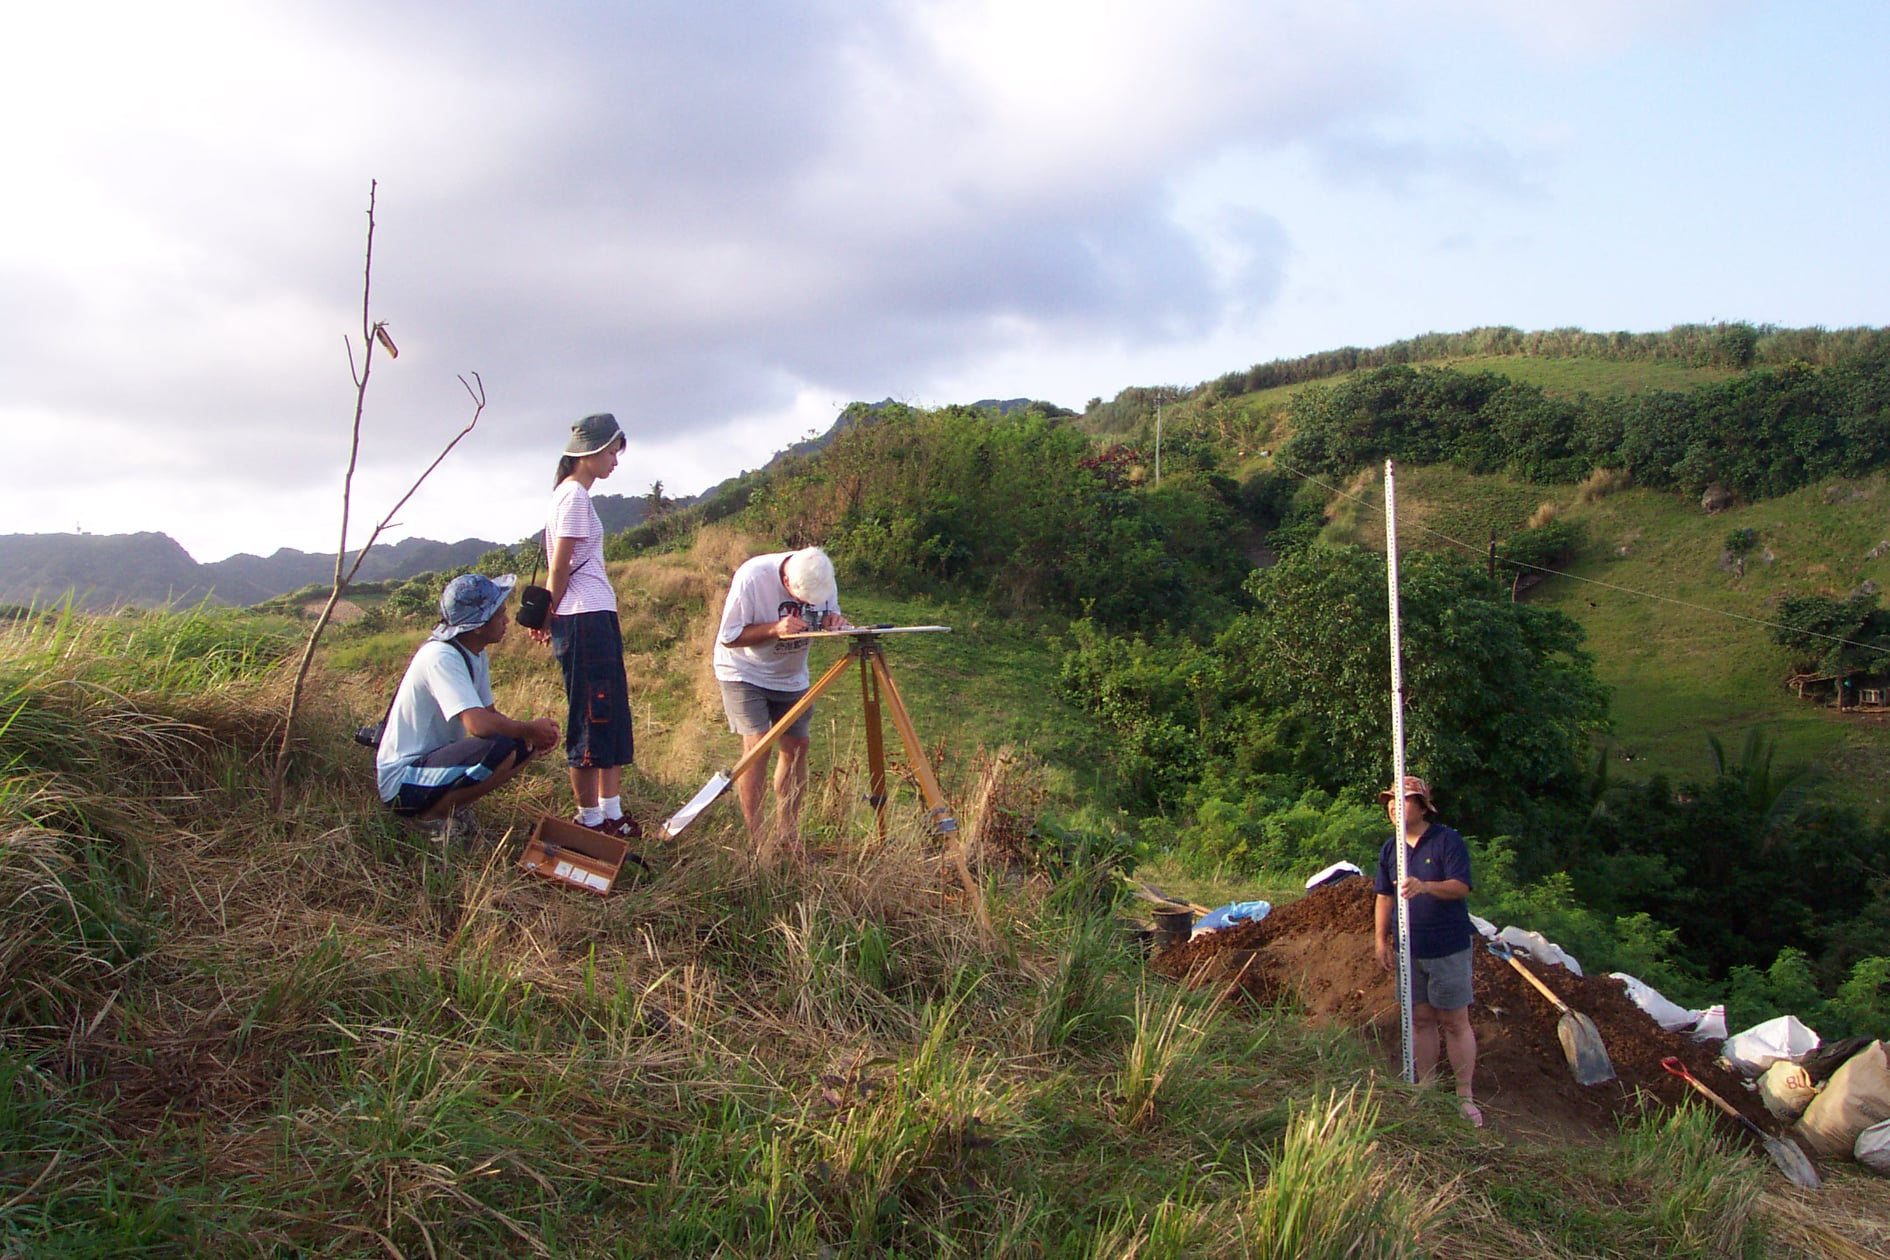 Mapping activity at Sunget Site (Sunget Top Terrace) led by Dr. Peter Bellwood with some of the team members